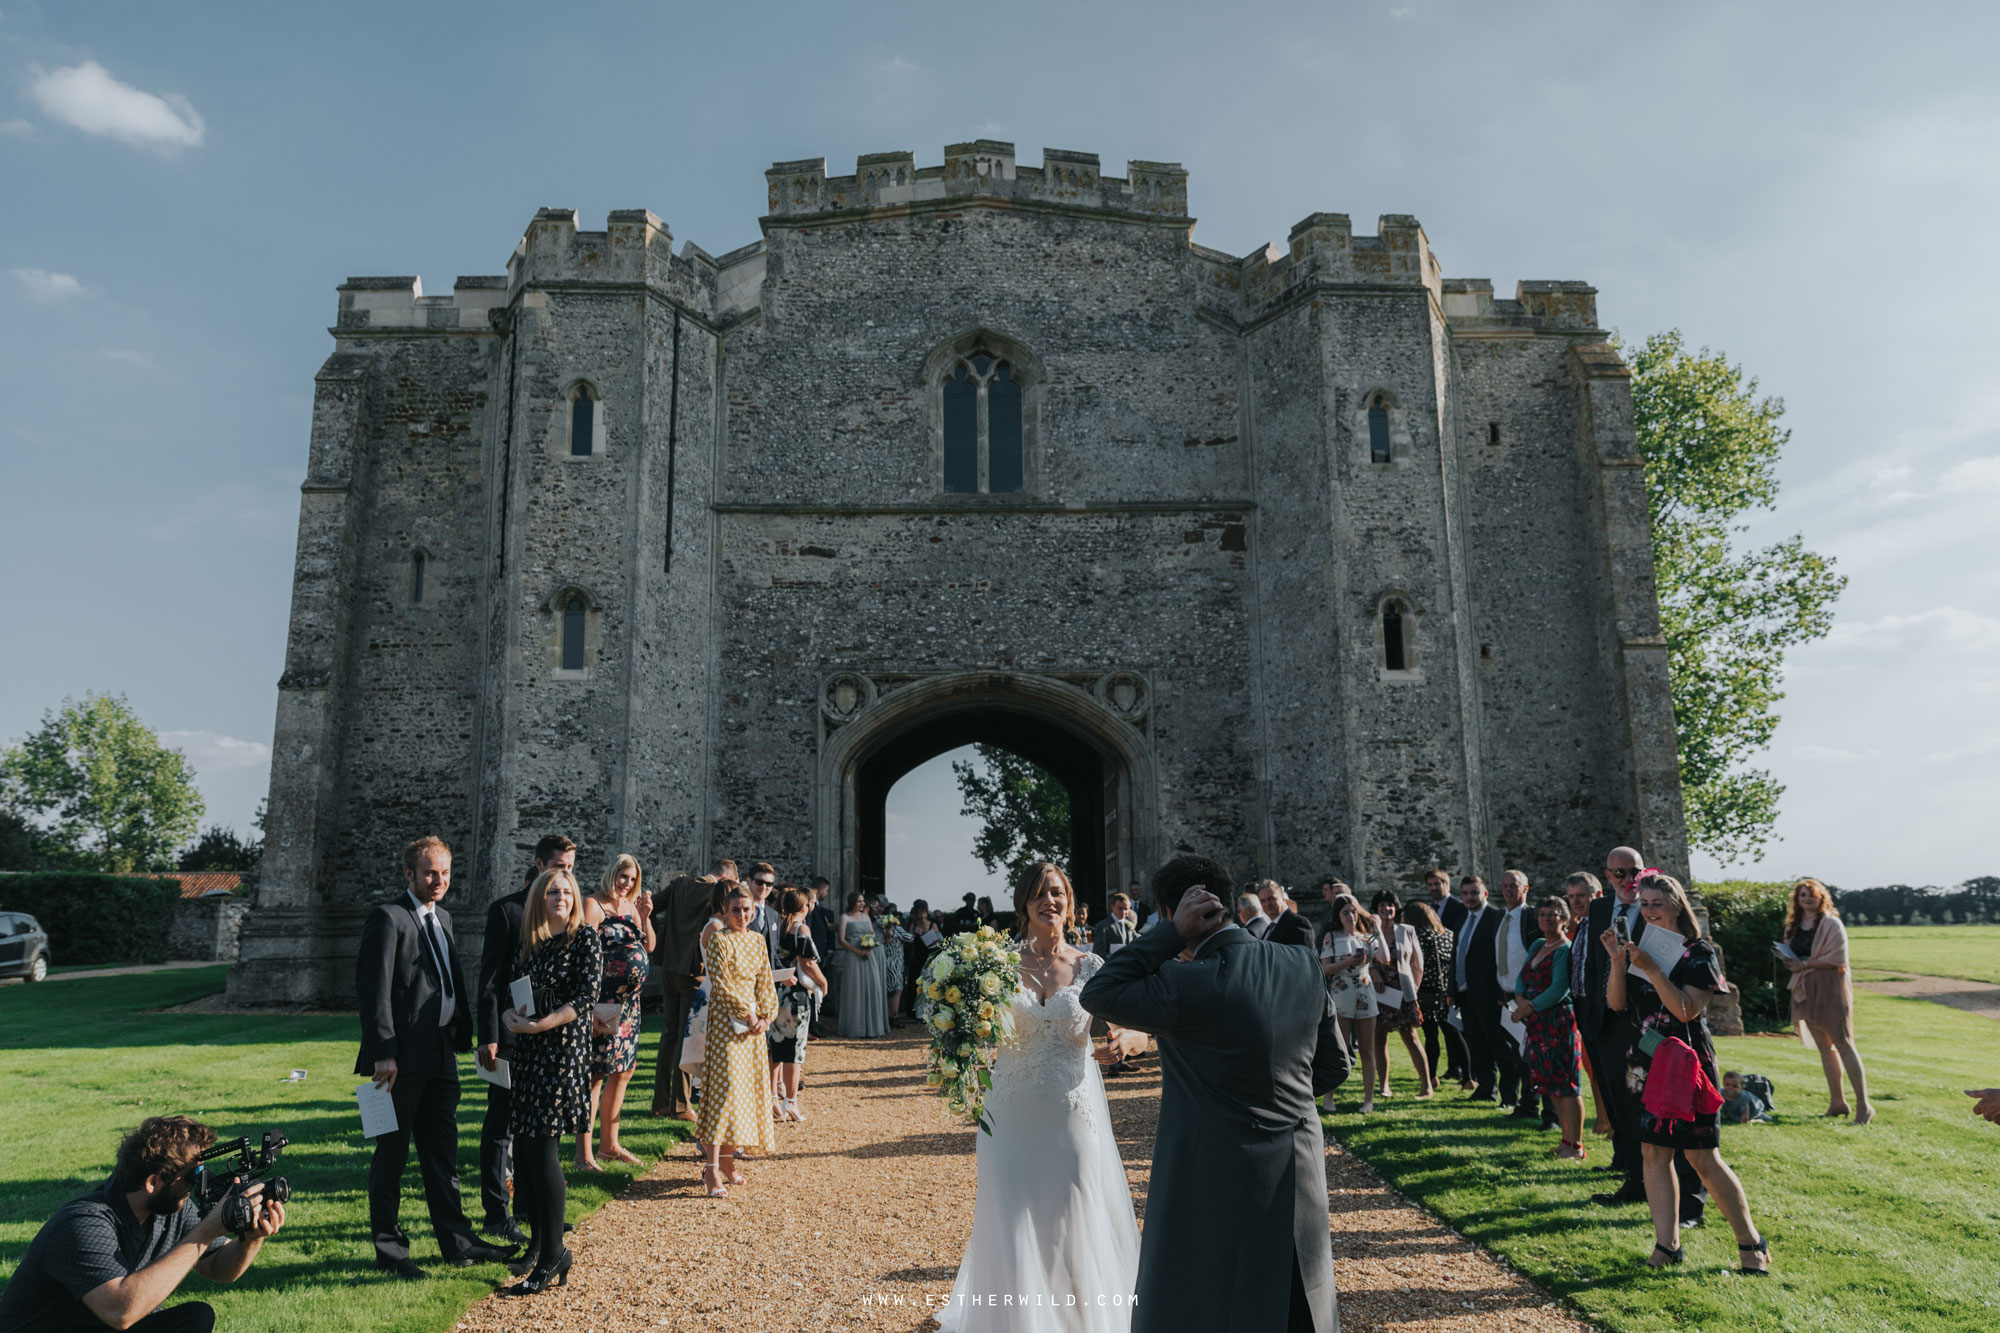 Pentney_Abbey_Wedding_Kings_Lynn_Norfolk_Esther_Wild_Wedding_Photography_IMG_0891.jpg